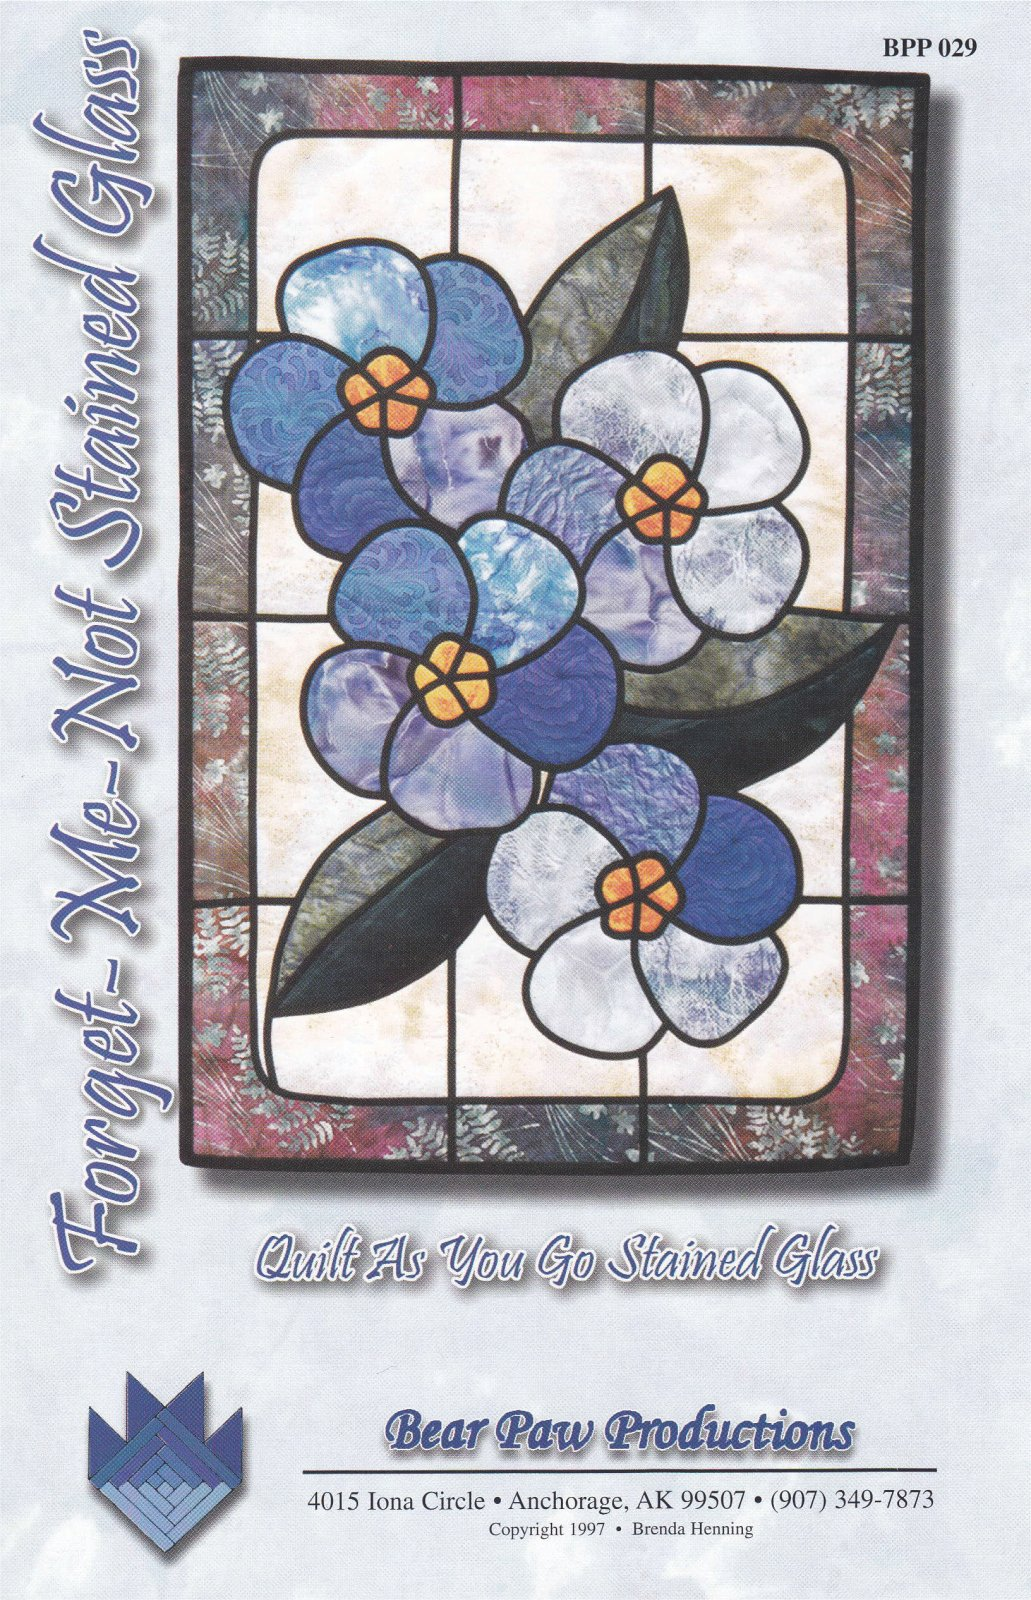 Forget Me Not Stained Glass